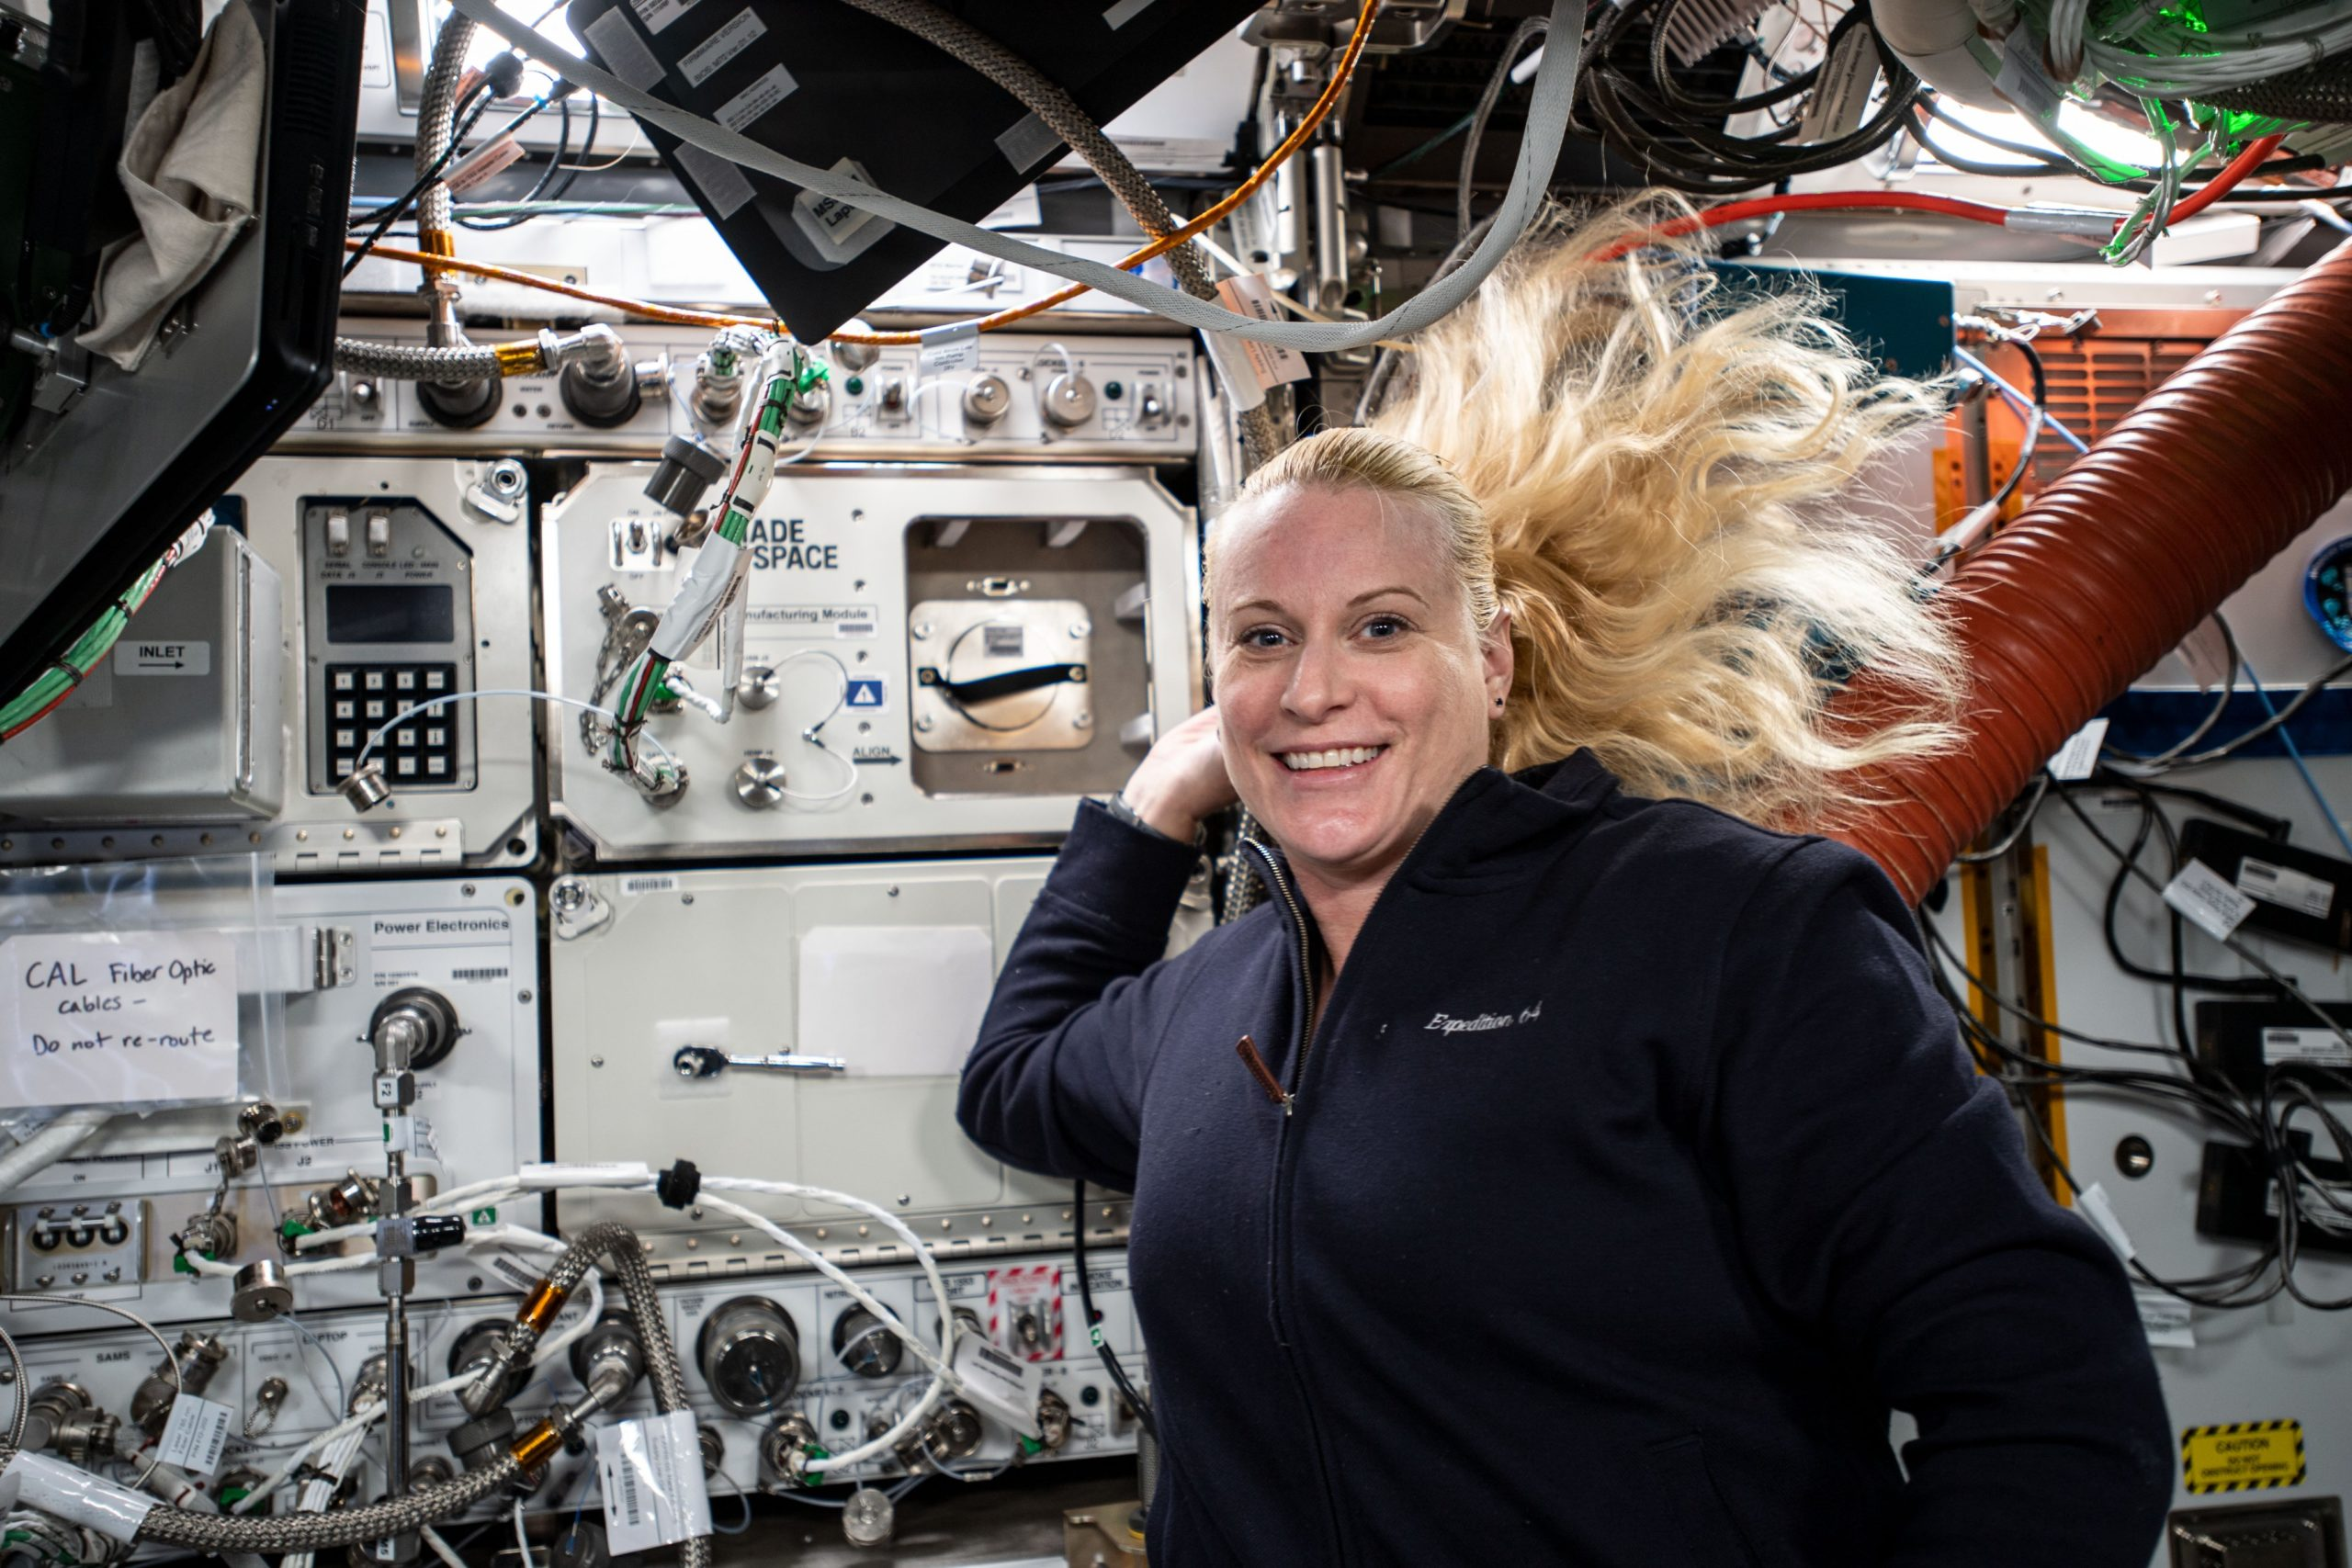 NASA engineer Kate Rubins next to the CMM installed on the ISS. Photo via NASA.